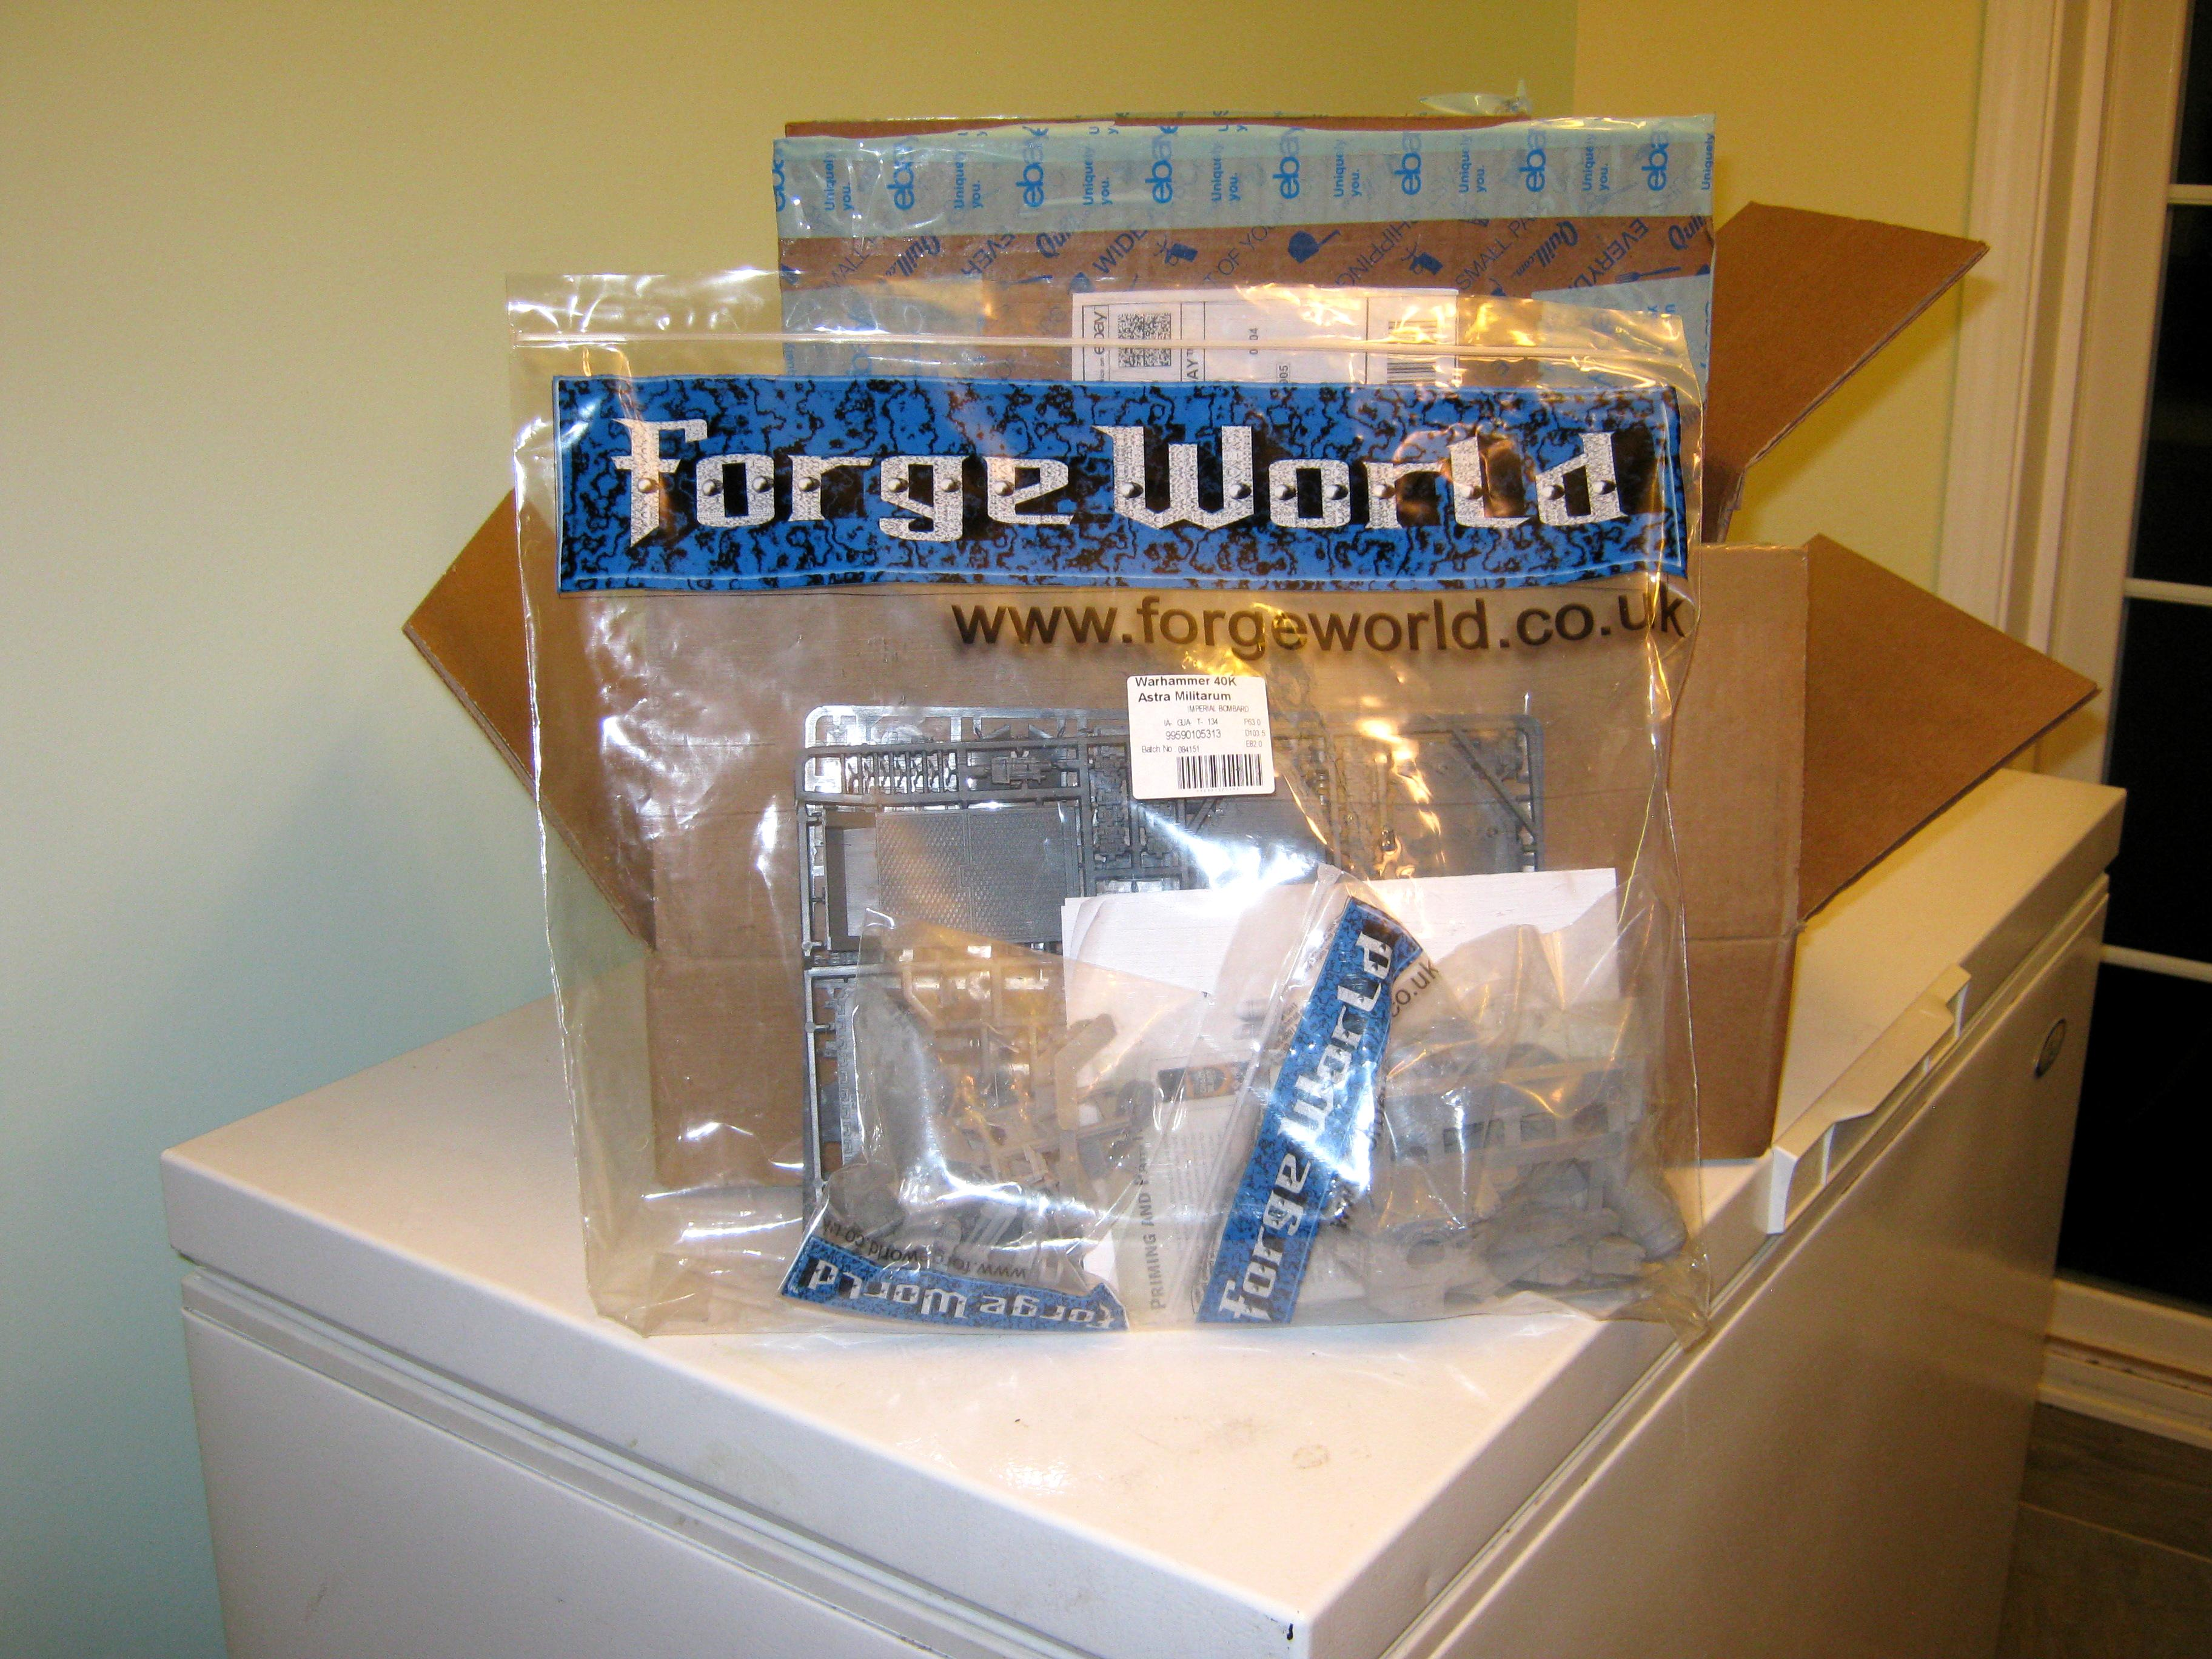 Forge World, Materials, Model Kits, Modeling, Paints, Supplies, Tools